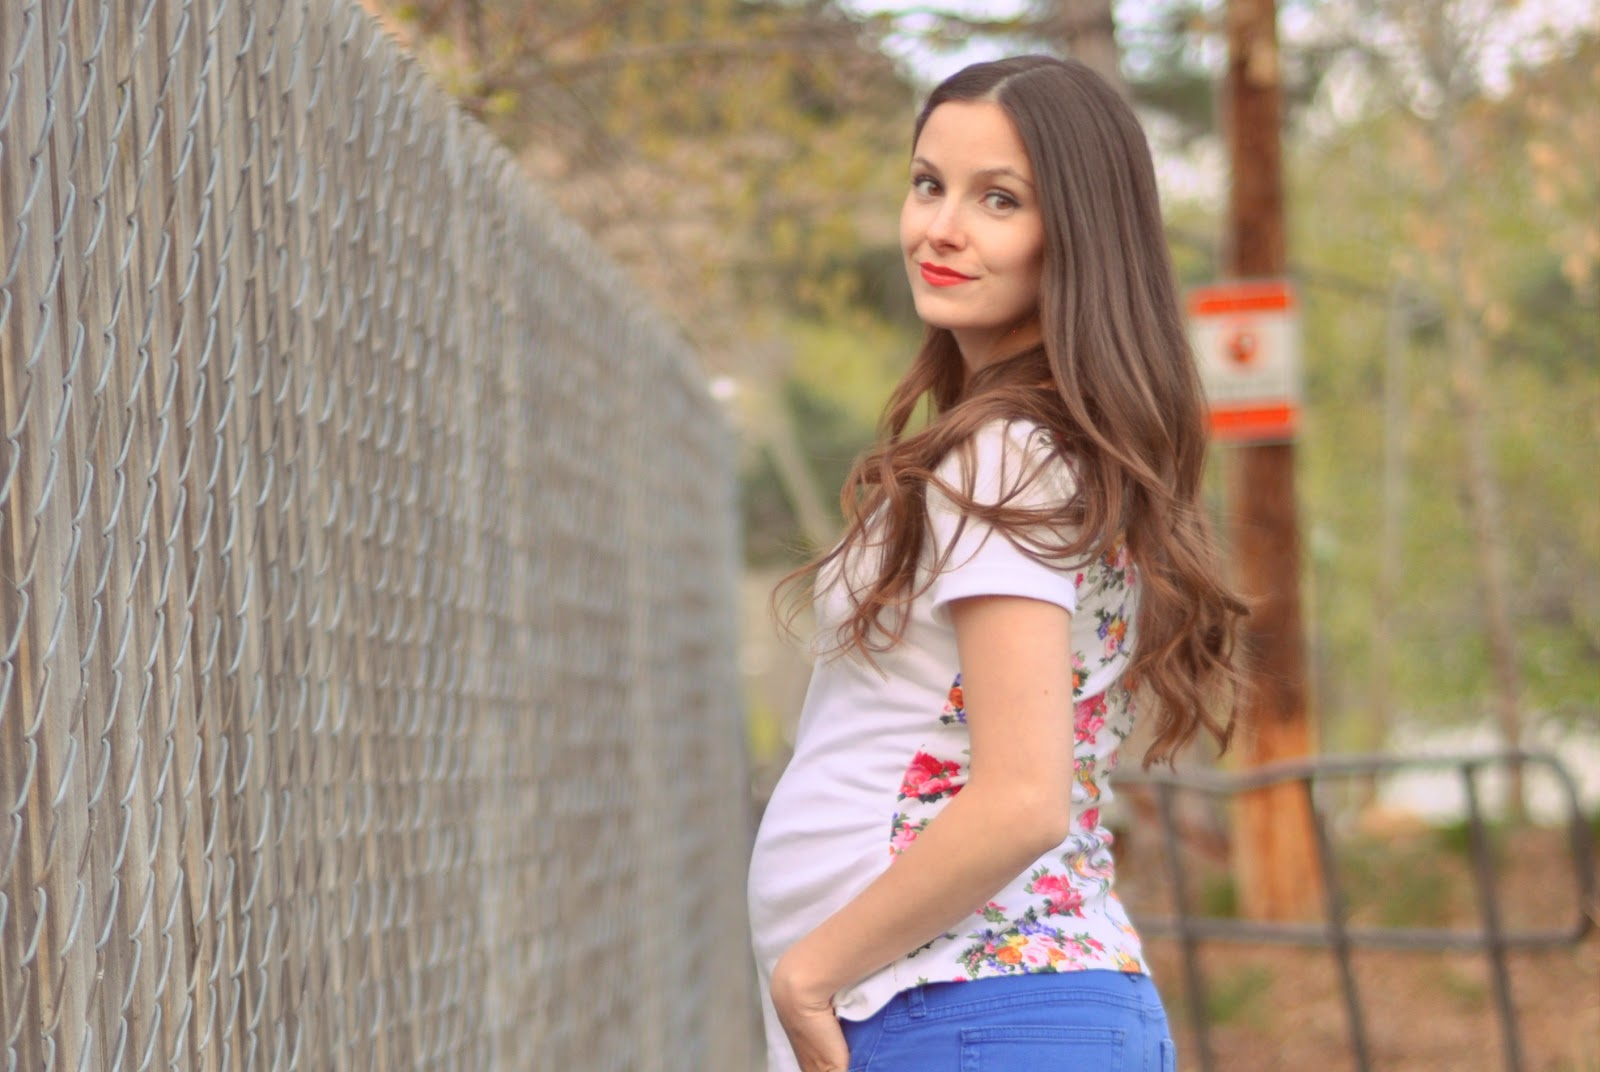 Diy Maternity Clothes Made Megan Nielsens Ruched Shirt Pattern With A Floral